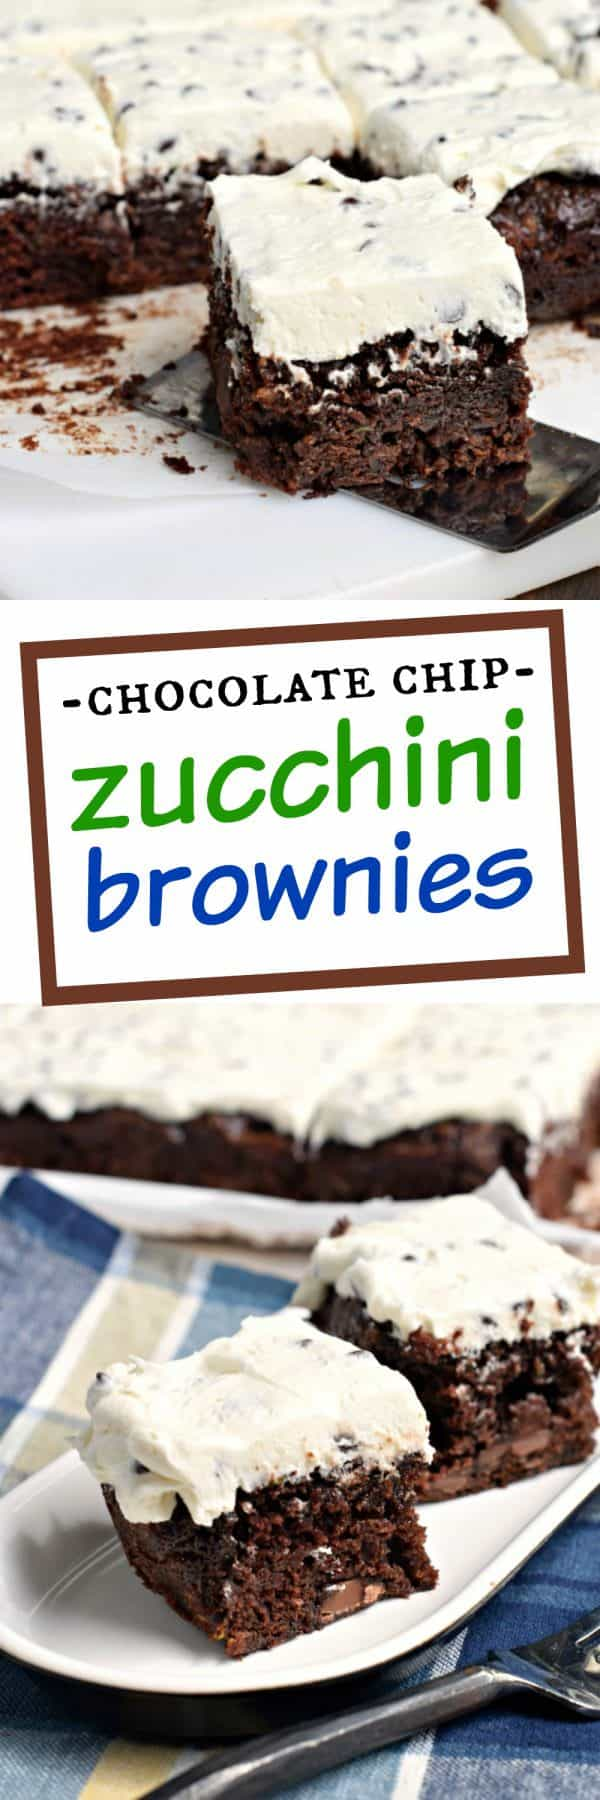 Fudgy, Chocolate Chip Zucchini Brownies with Chocolate Chip Frosting ...